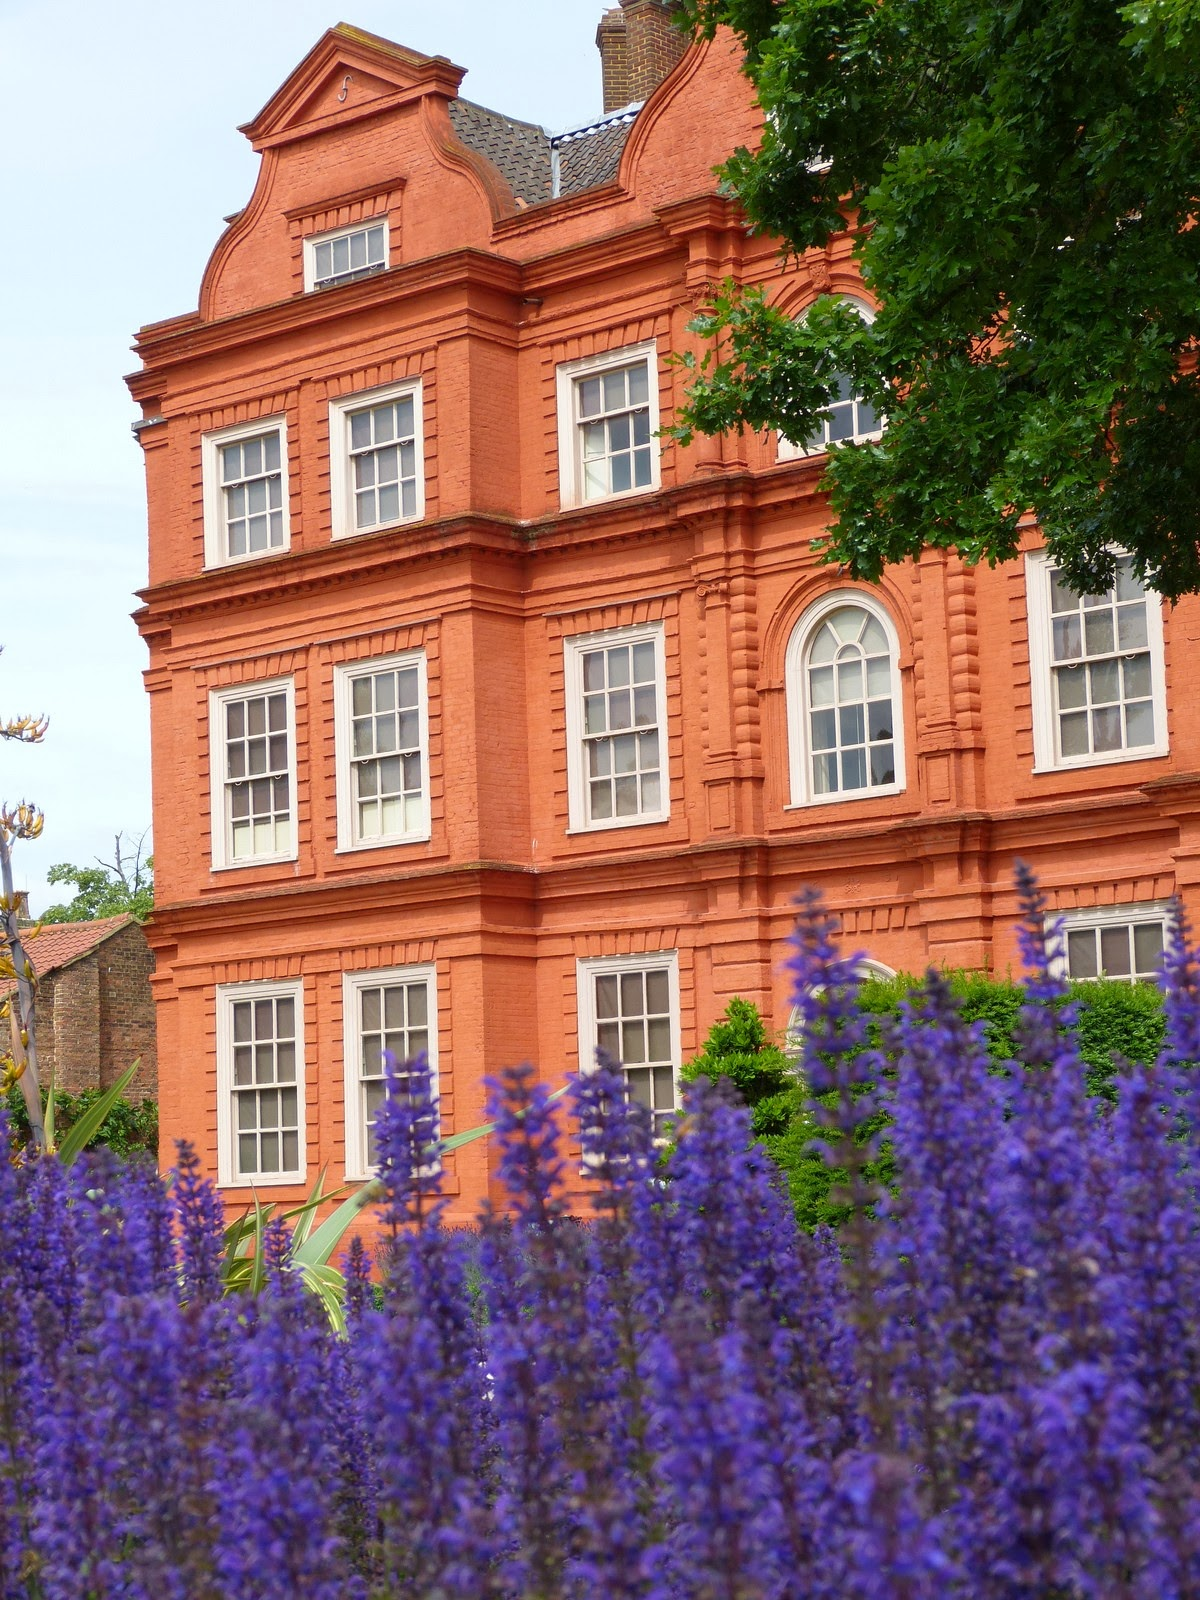 Bluebells in front of Kew Palace